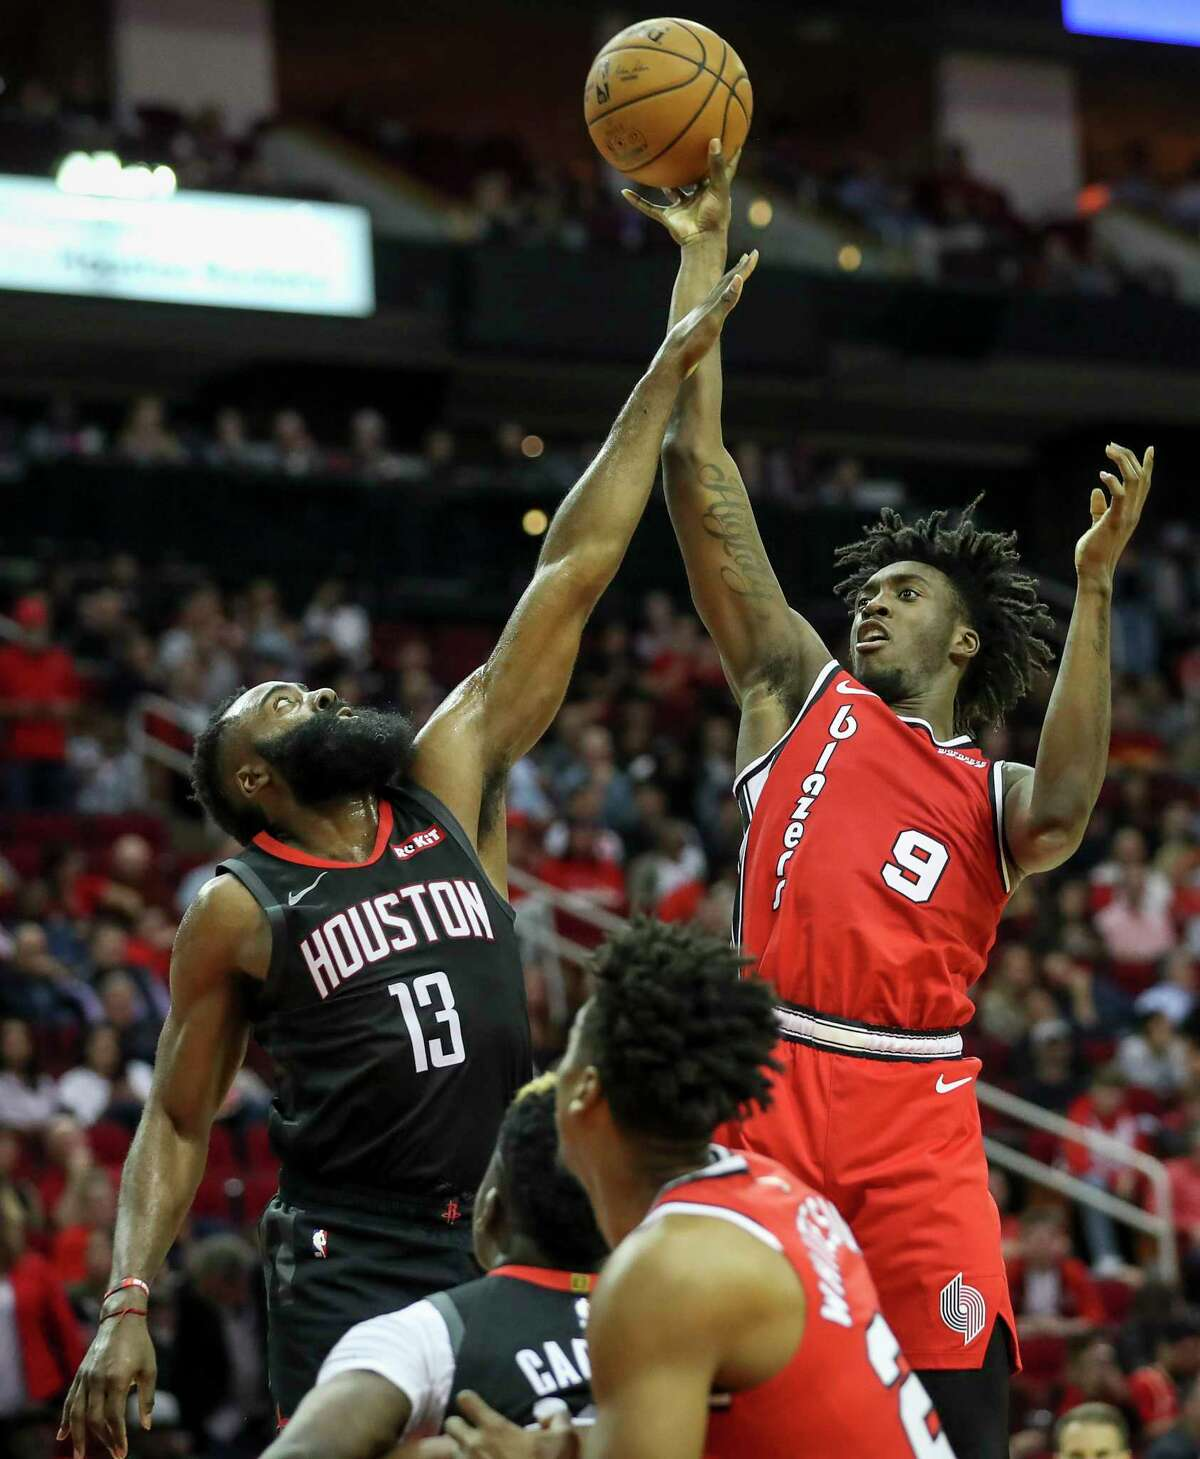 Portland Trail Blazers forward Nassir Little (9) shoots over Houston Rockets guard James Harden (13) during the second quarter of an NBA basketball game at the Toyota Center on Monday, Nov. 18, 2019, in Houston.